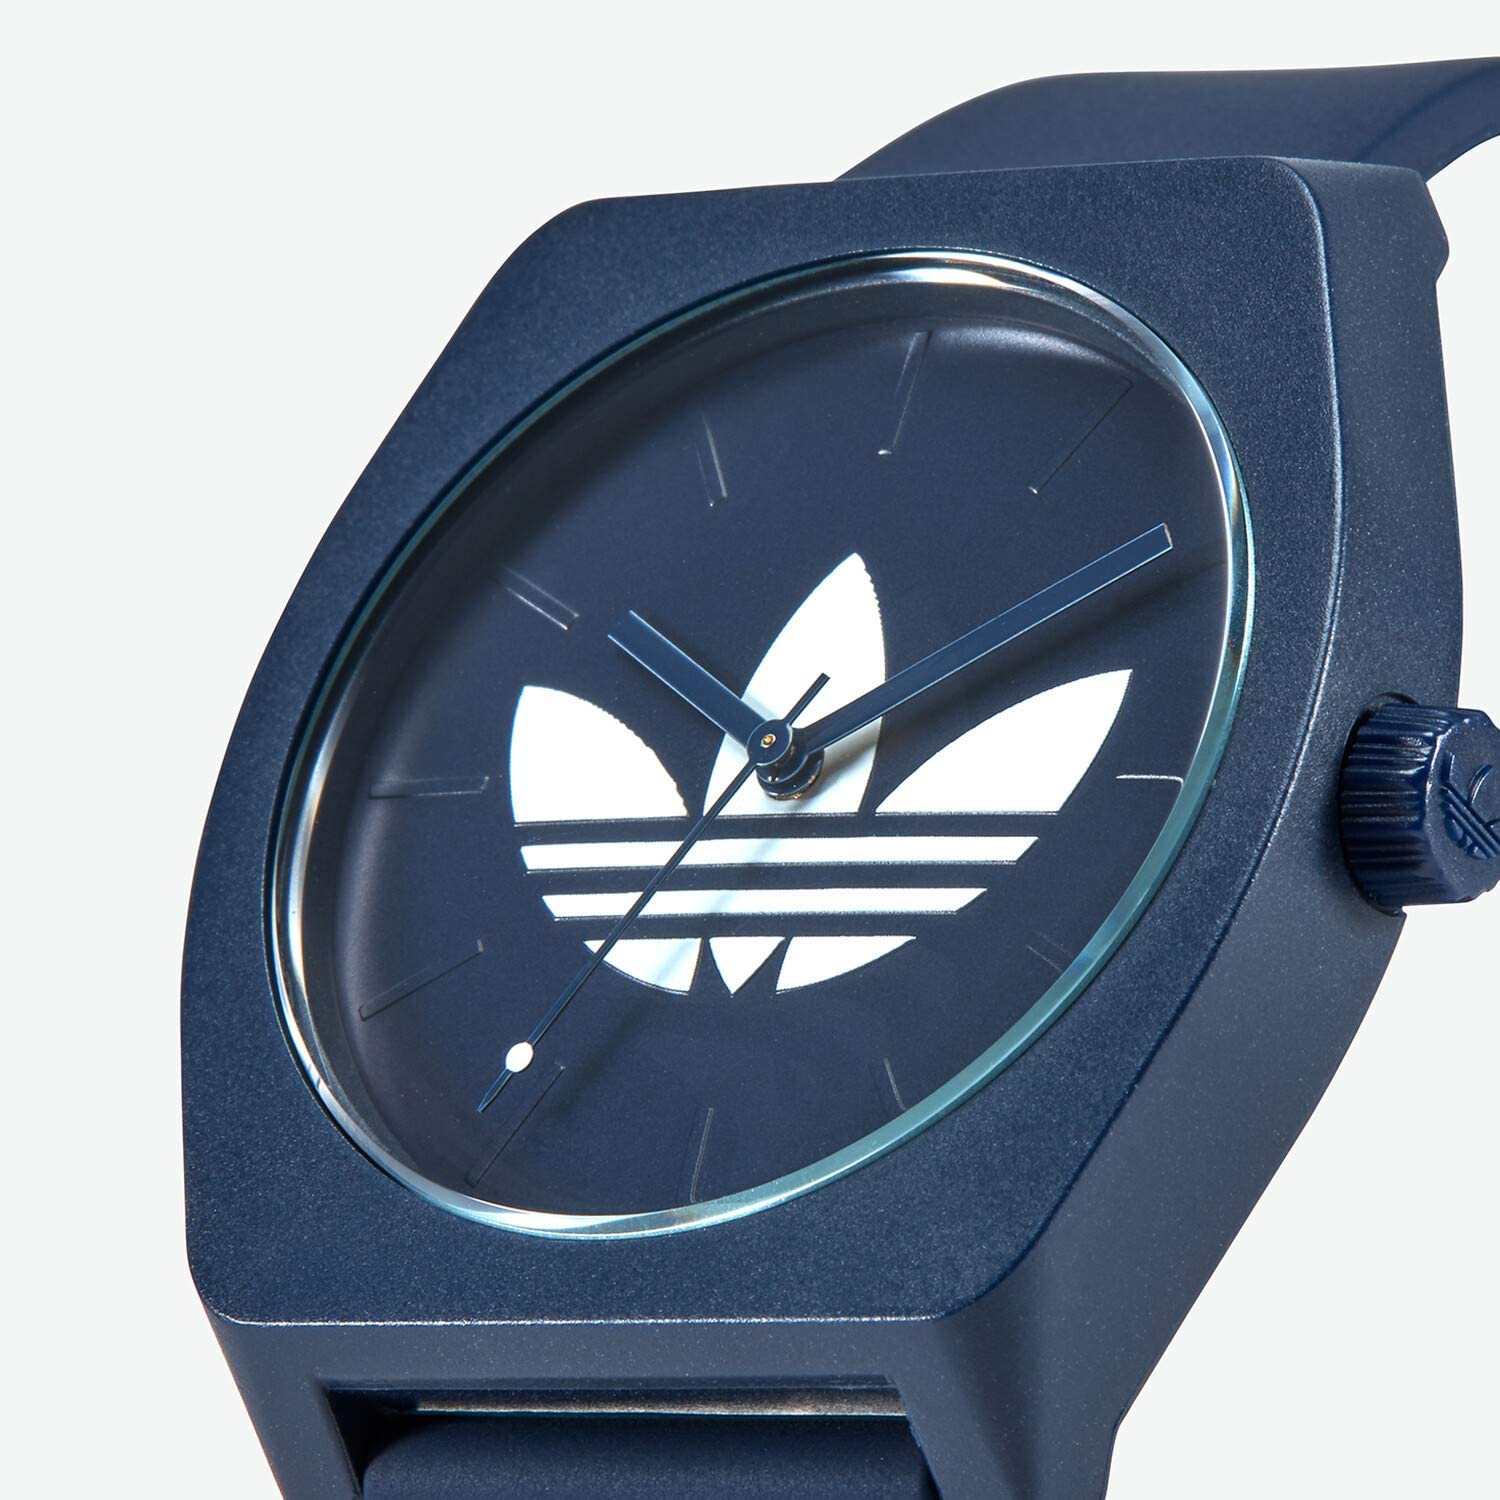 adidas Watches Process_SP1. Silicone Strap, 20mm Width (38 mm). Collegiate Navy